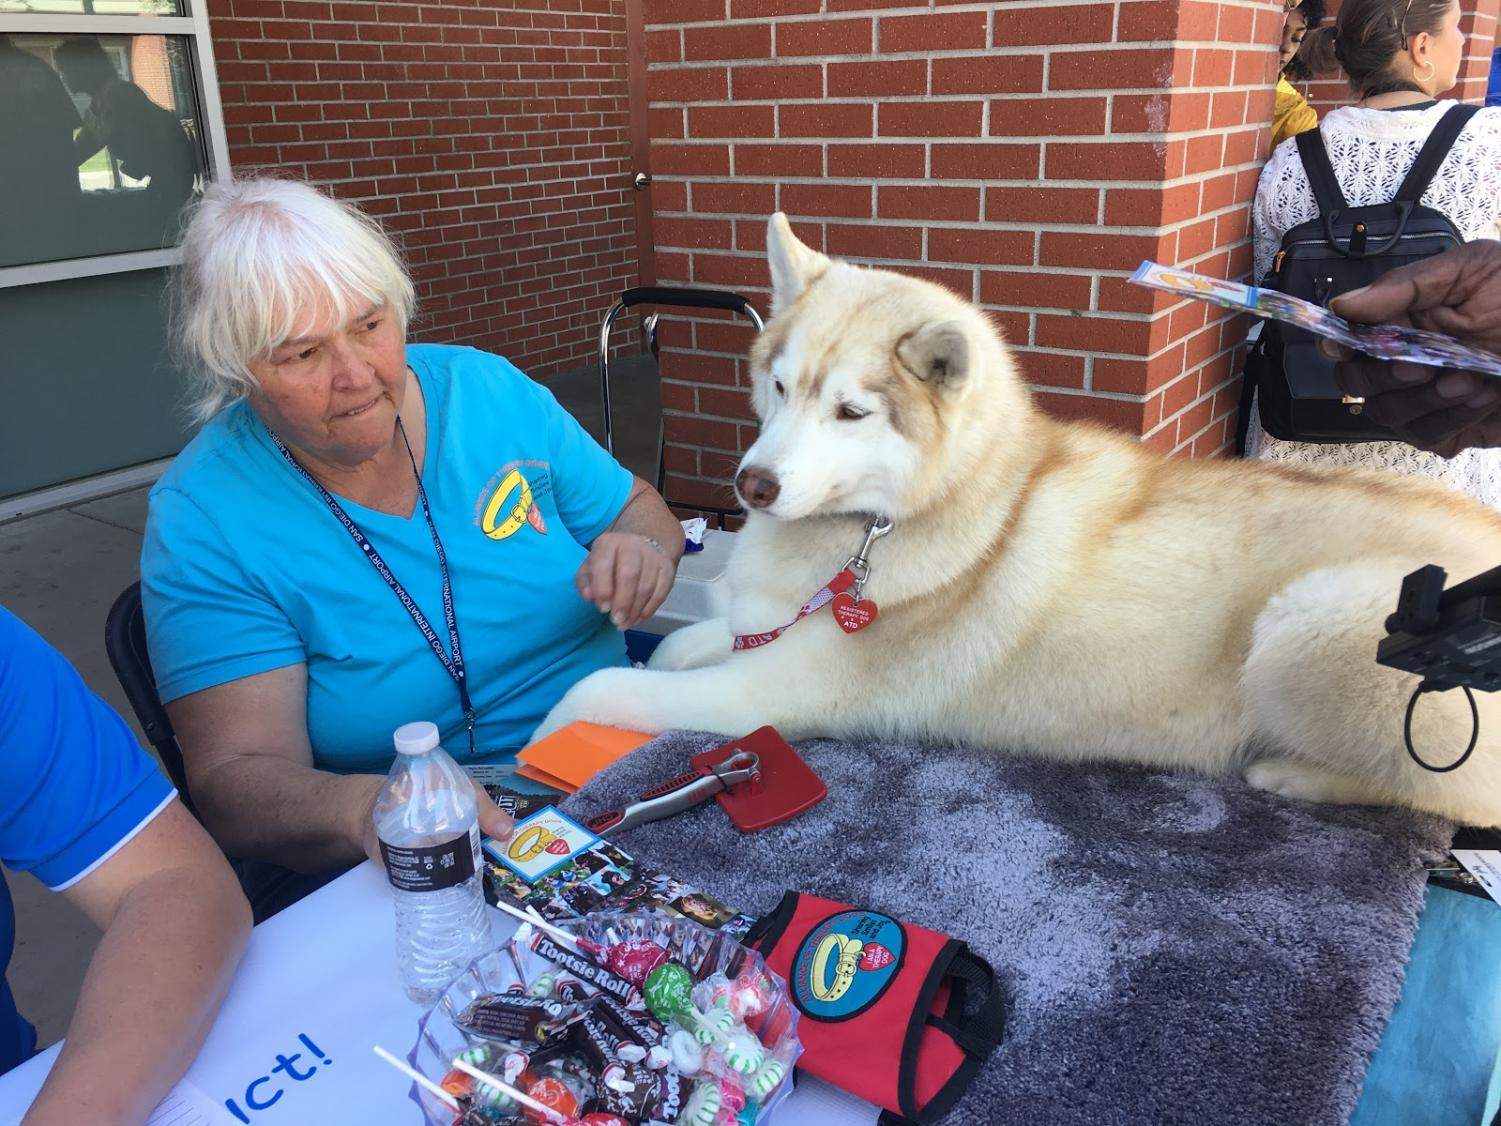 Pet therapy was encouraged by Best of Care at the Health and Wellness Expo at City College. By Uyen Pham/City Times